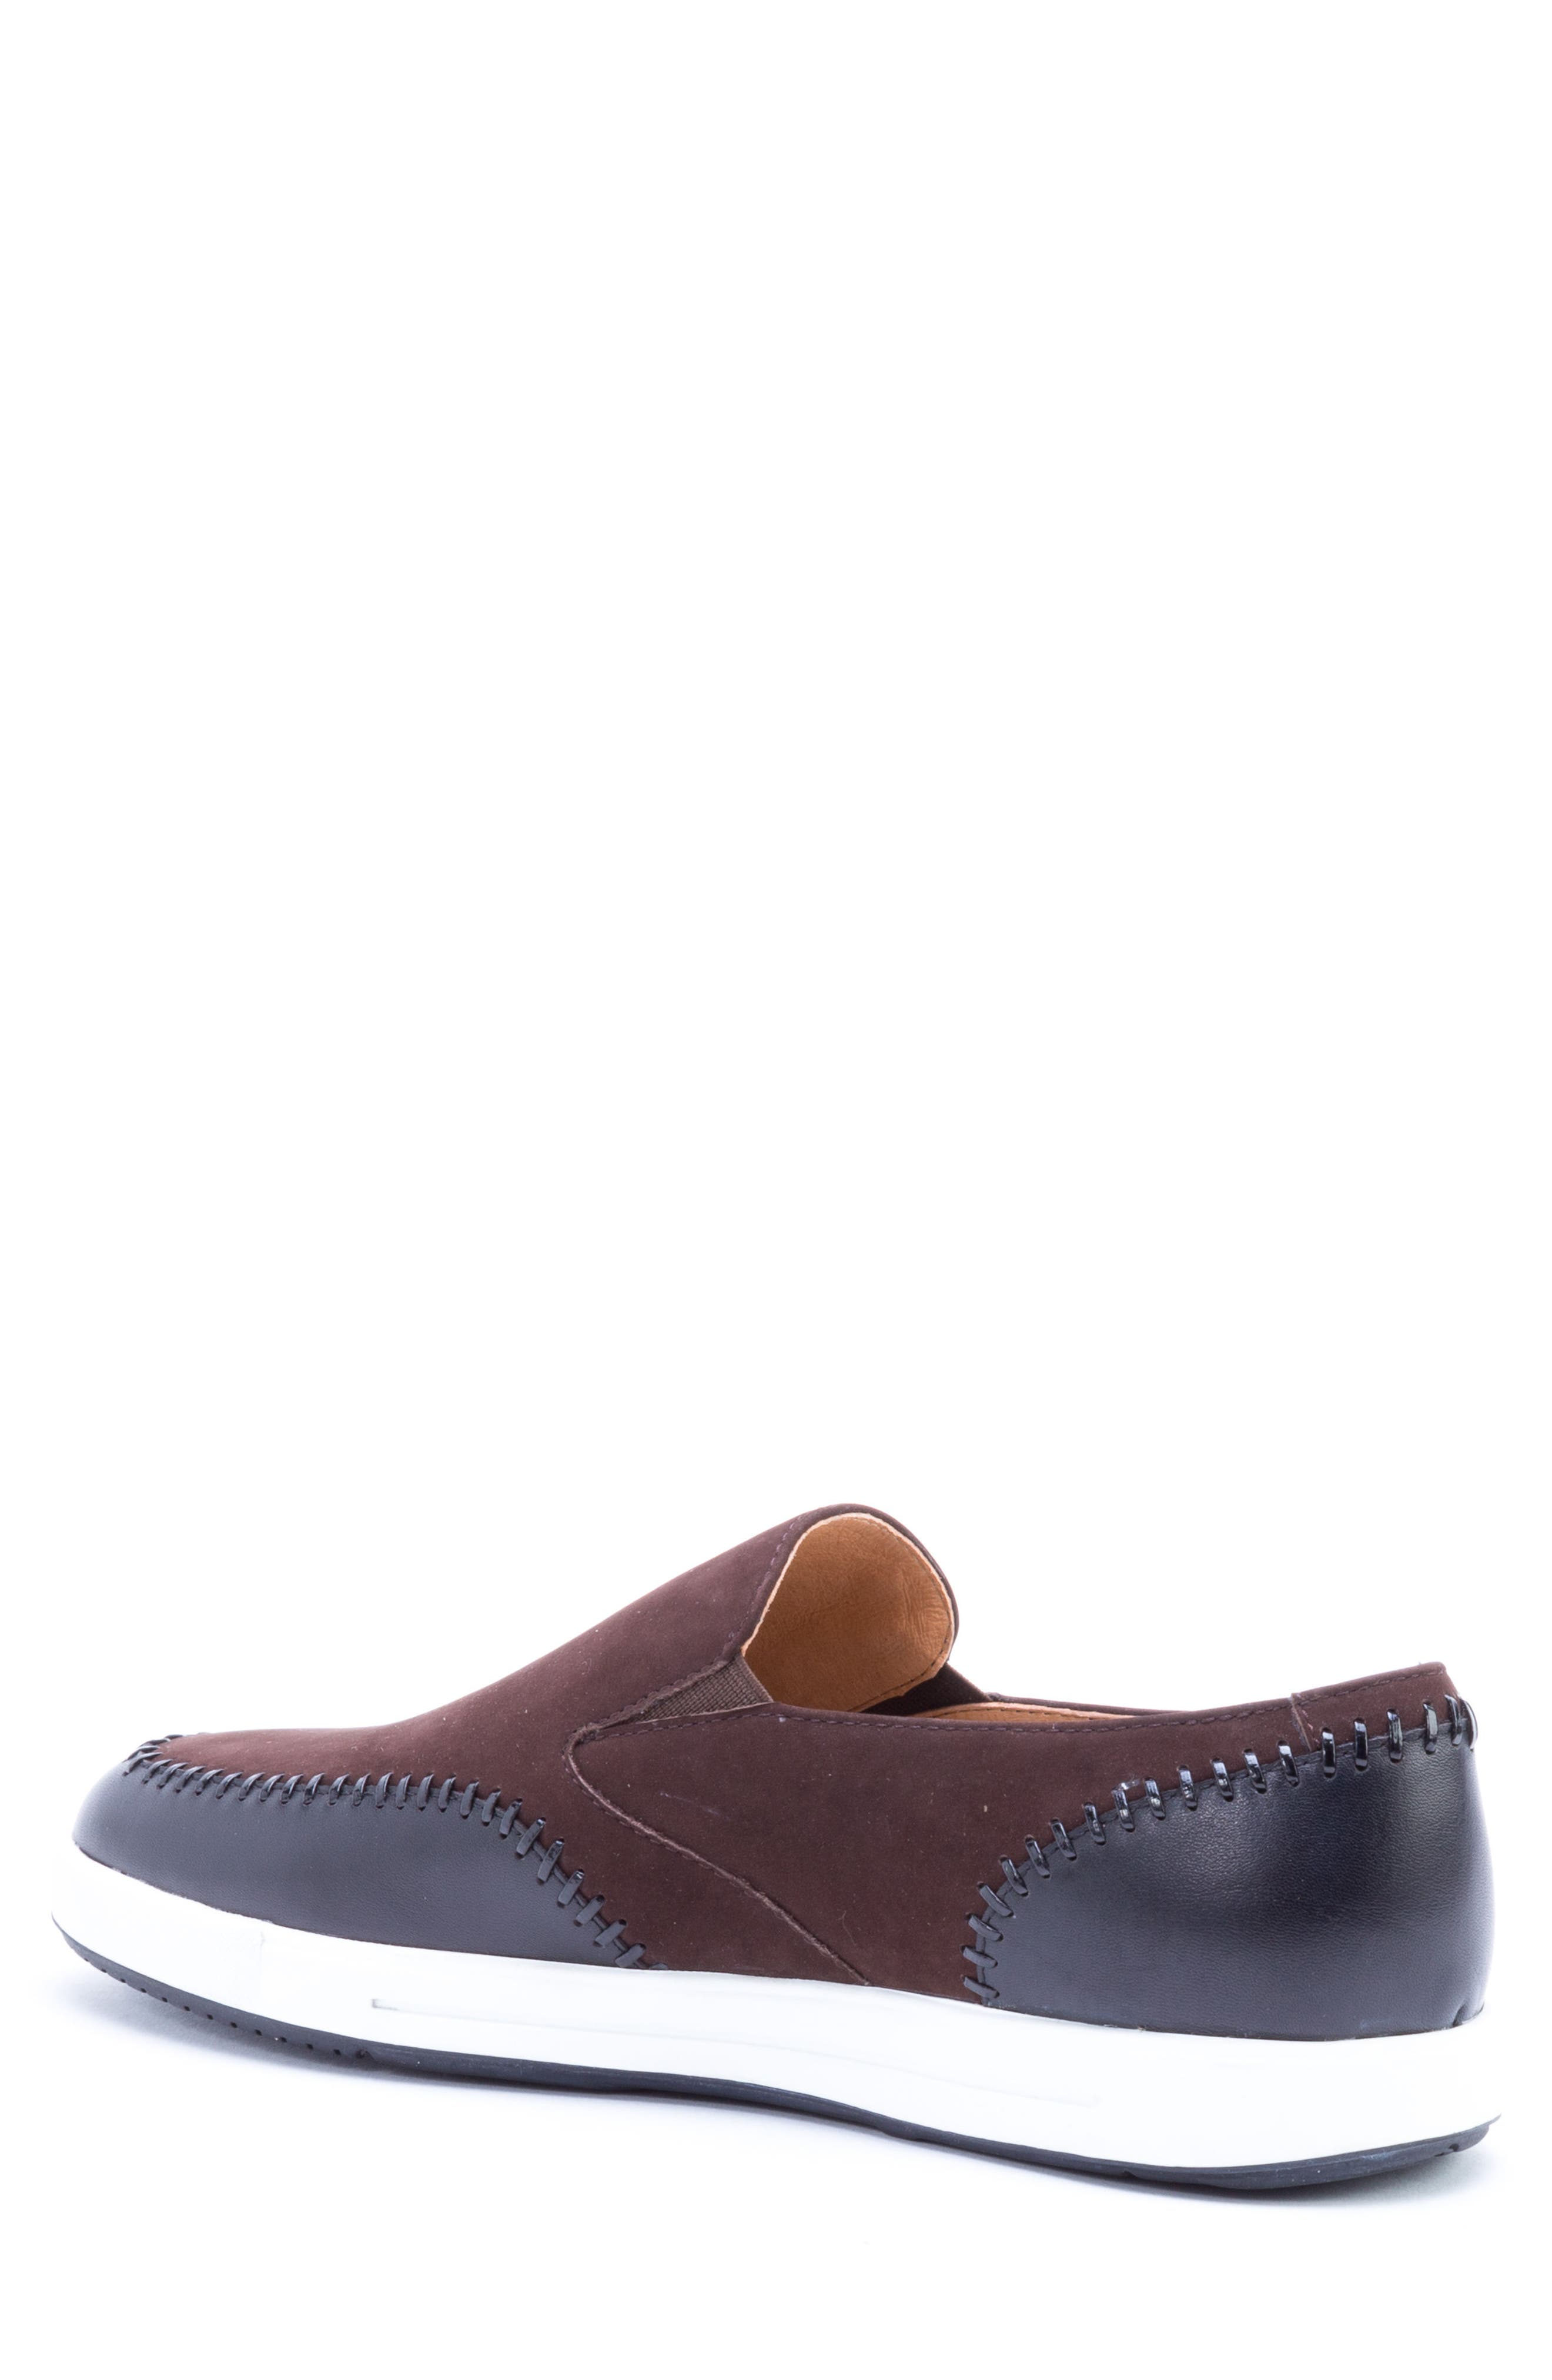 Caravaggio Whipstitched Slip-On Sneaker,                             Alternate thumbnail 2, color,                             BROWN SUEDE/ LEATHER